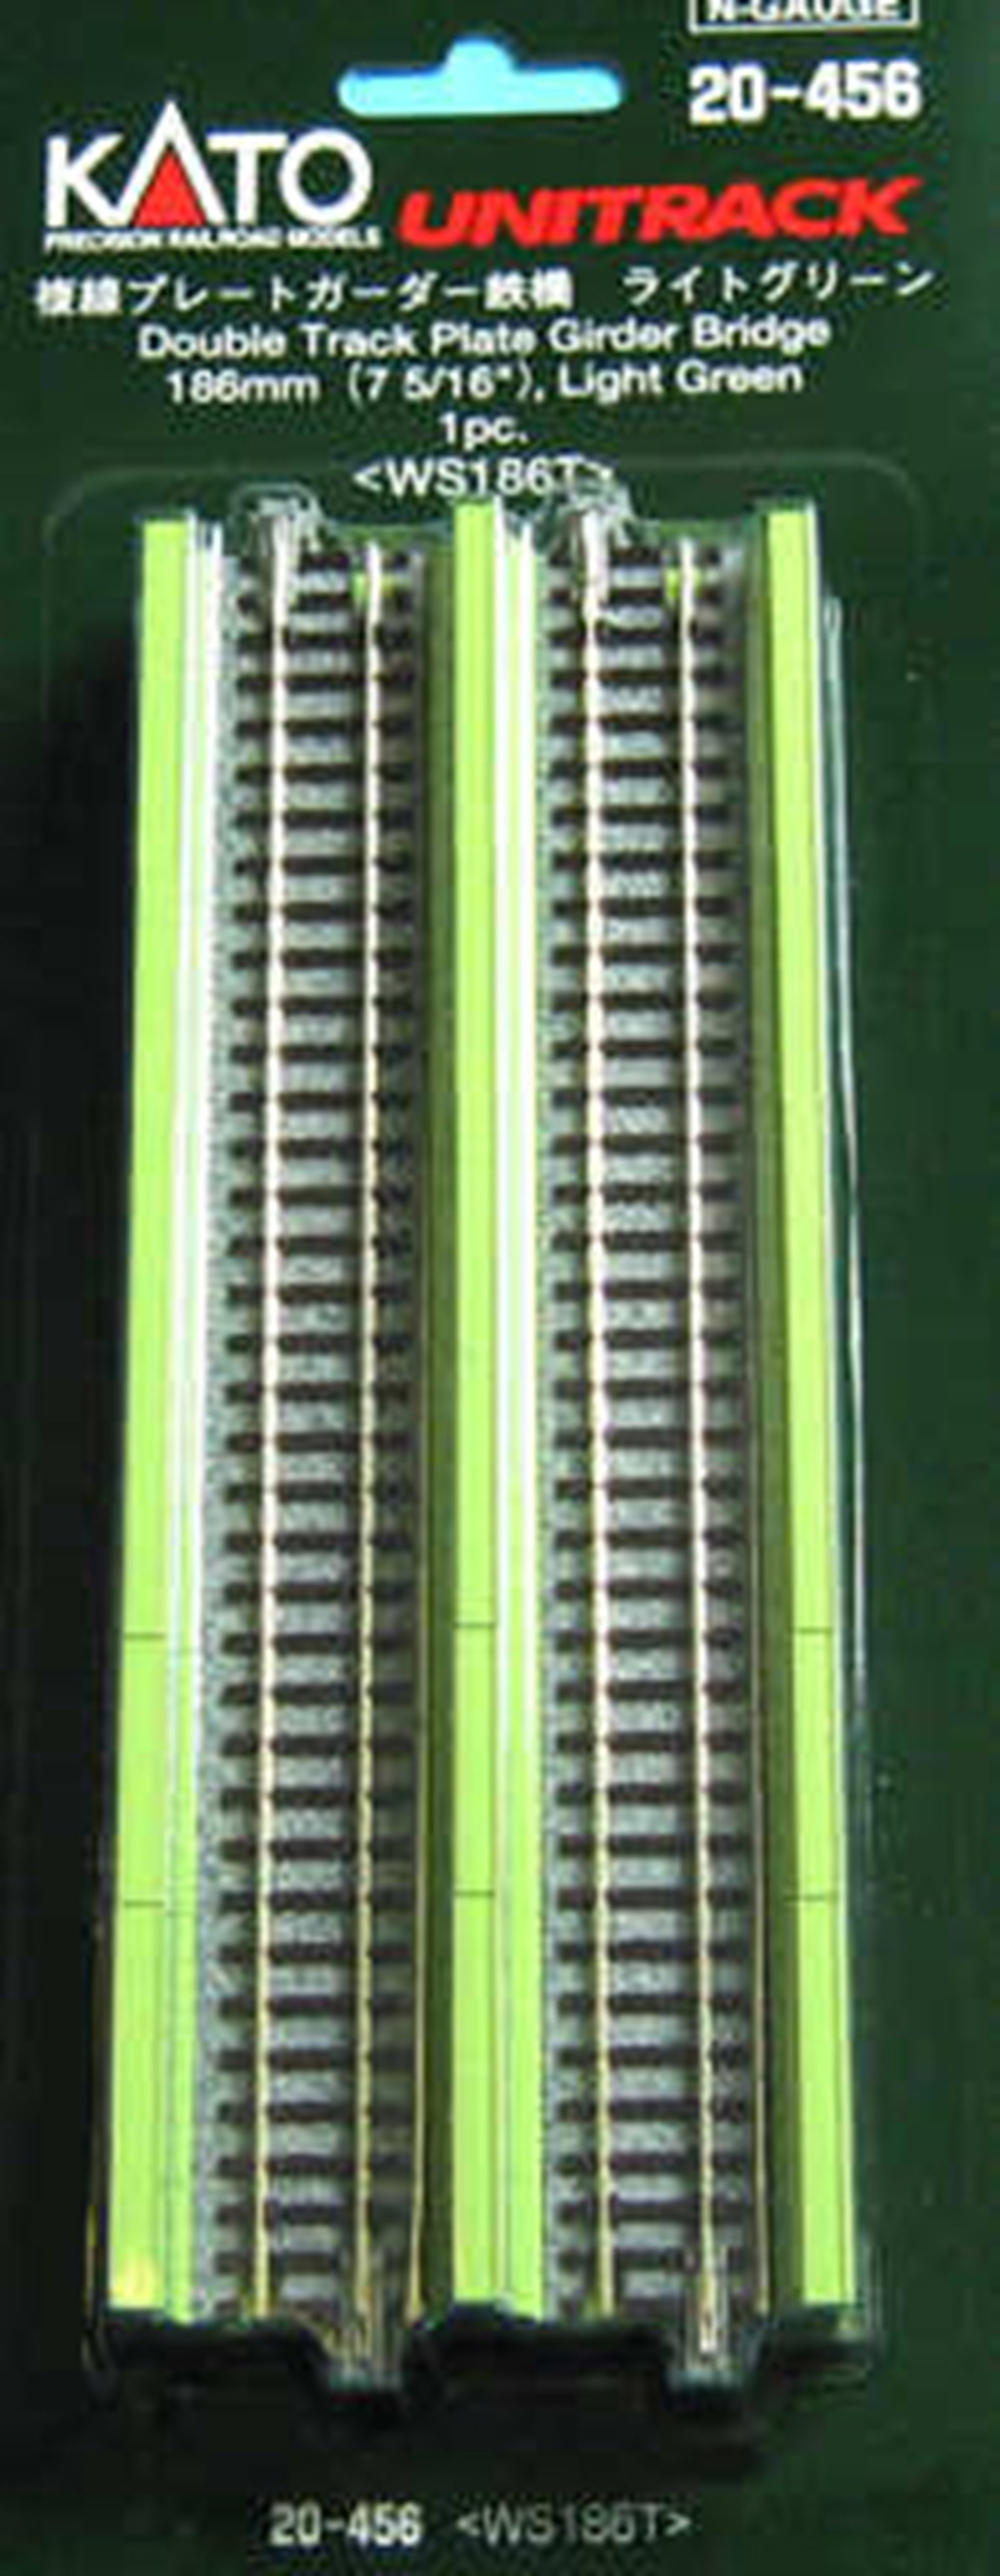 Kato 20-456 Double Track Plate Bridge 186mm Light Green